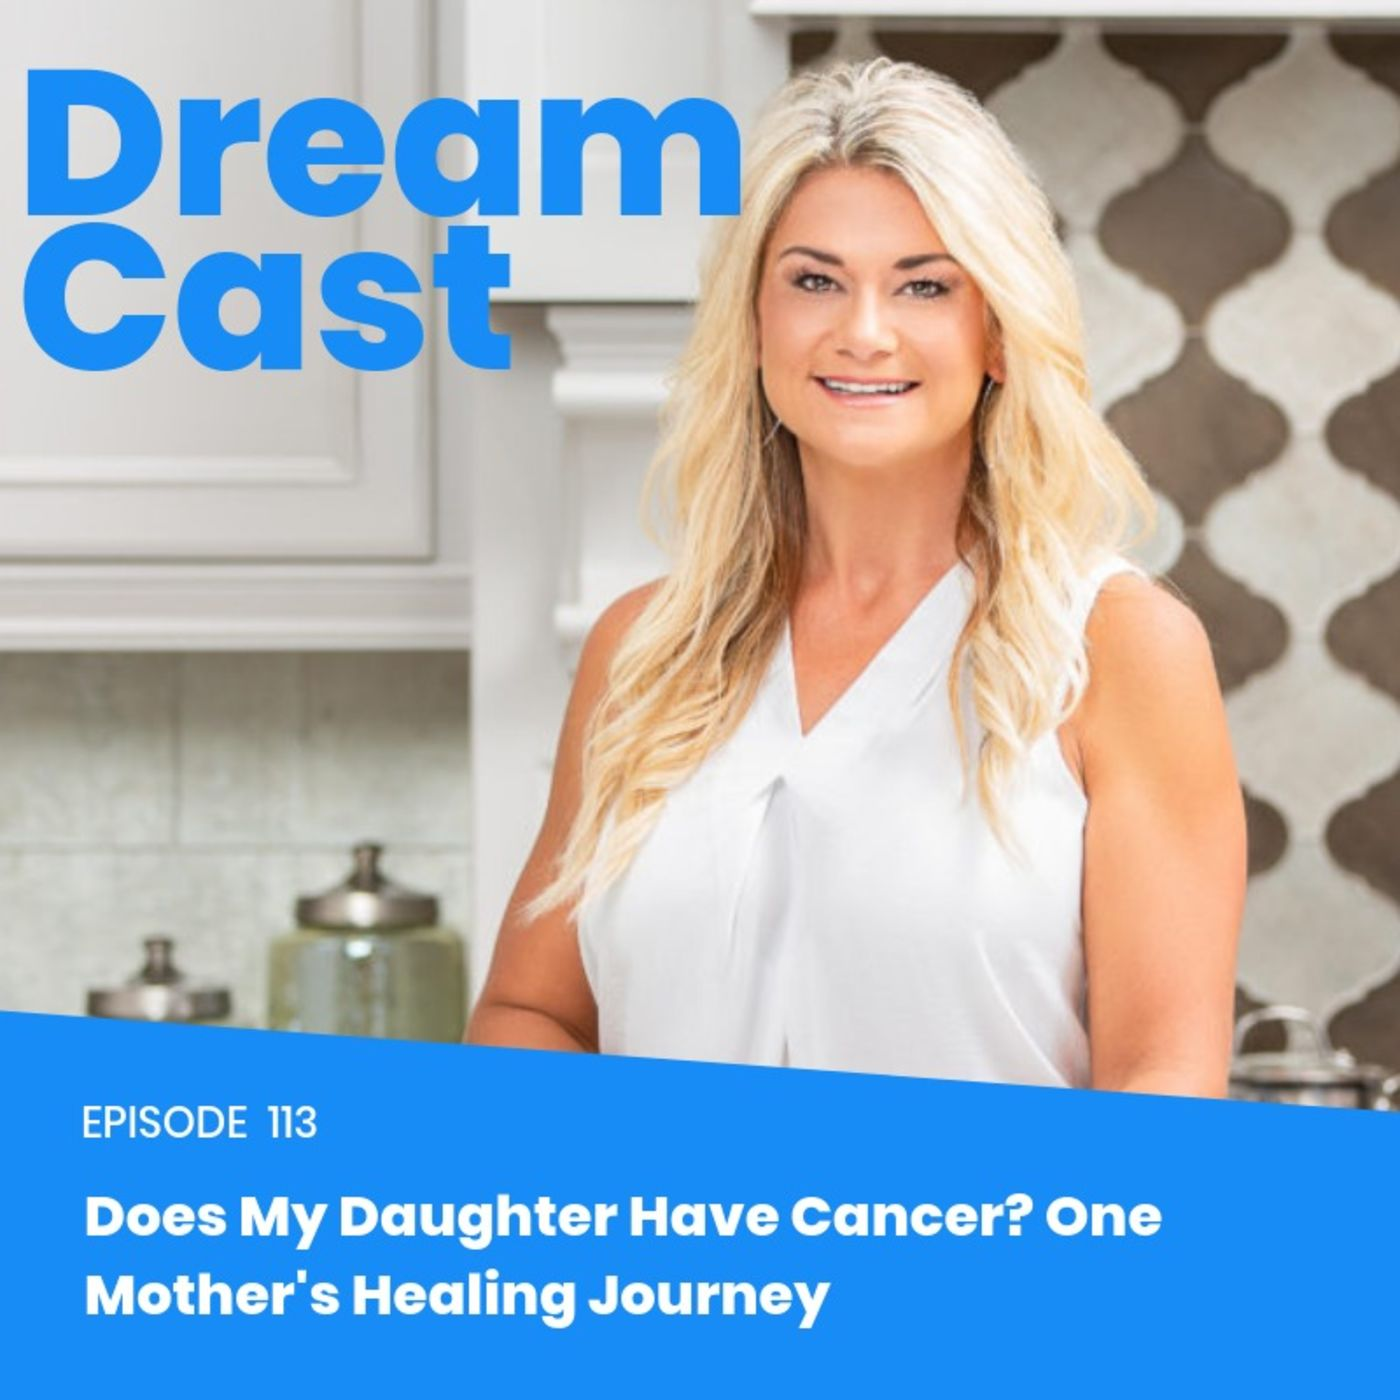 Episode 113 - Does My Daughter Have Cancer?  One Mother's Healing Journey